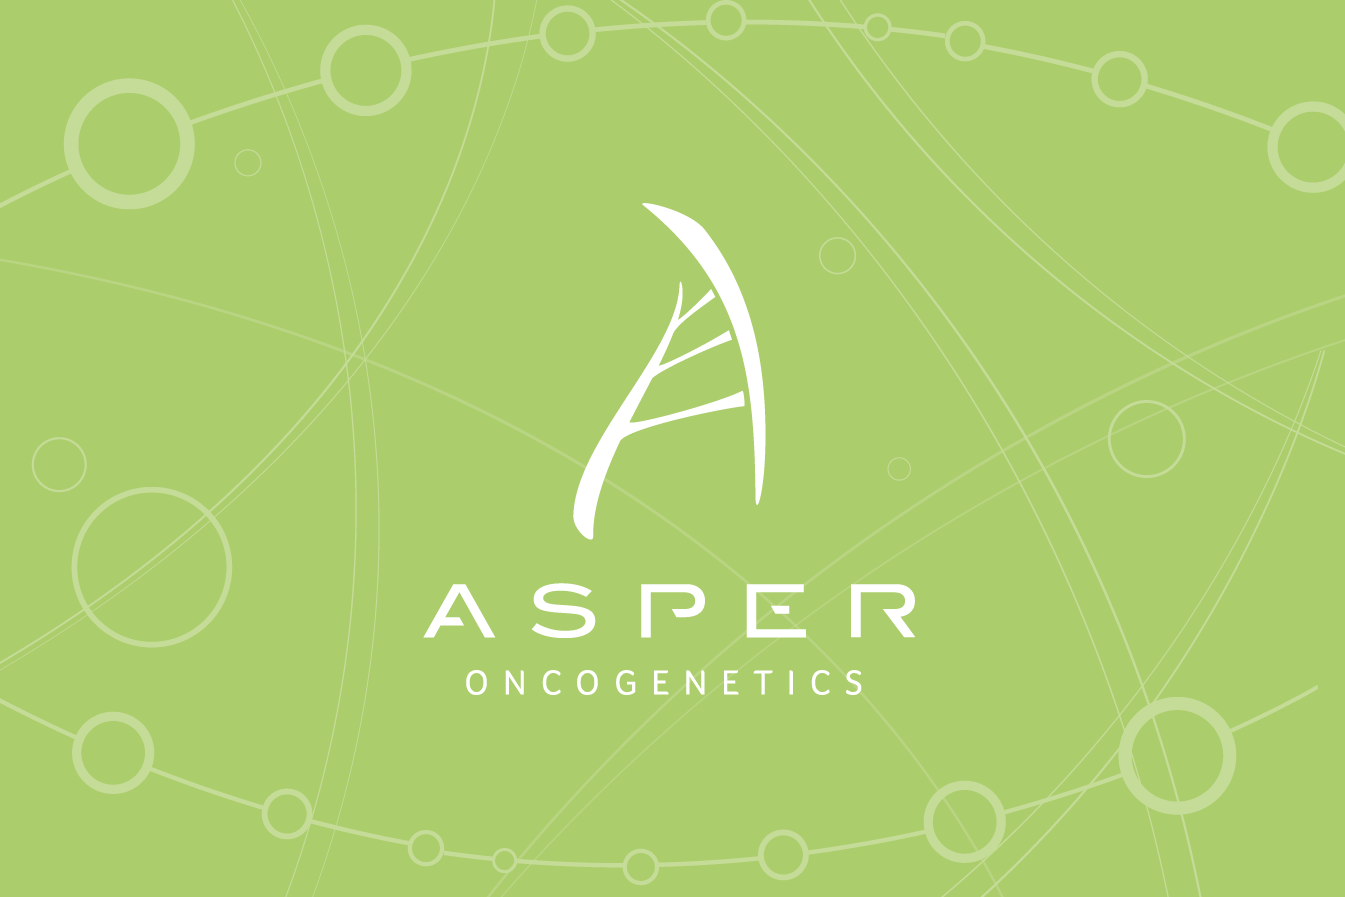 Asper Oncogenetics update